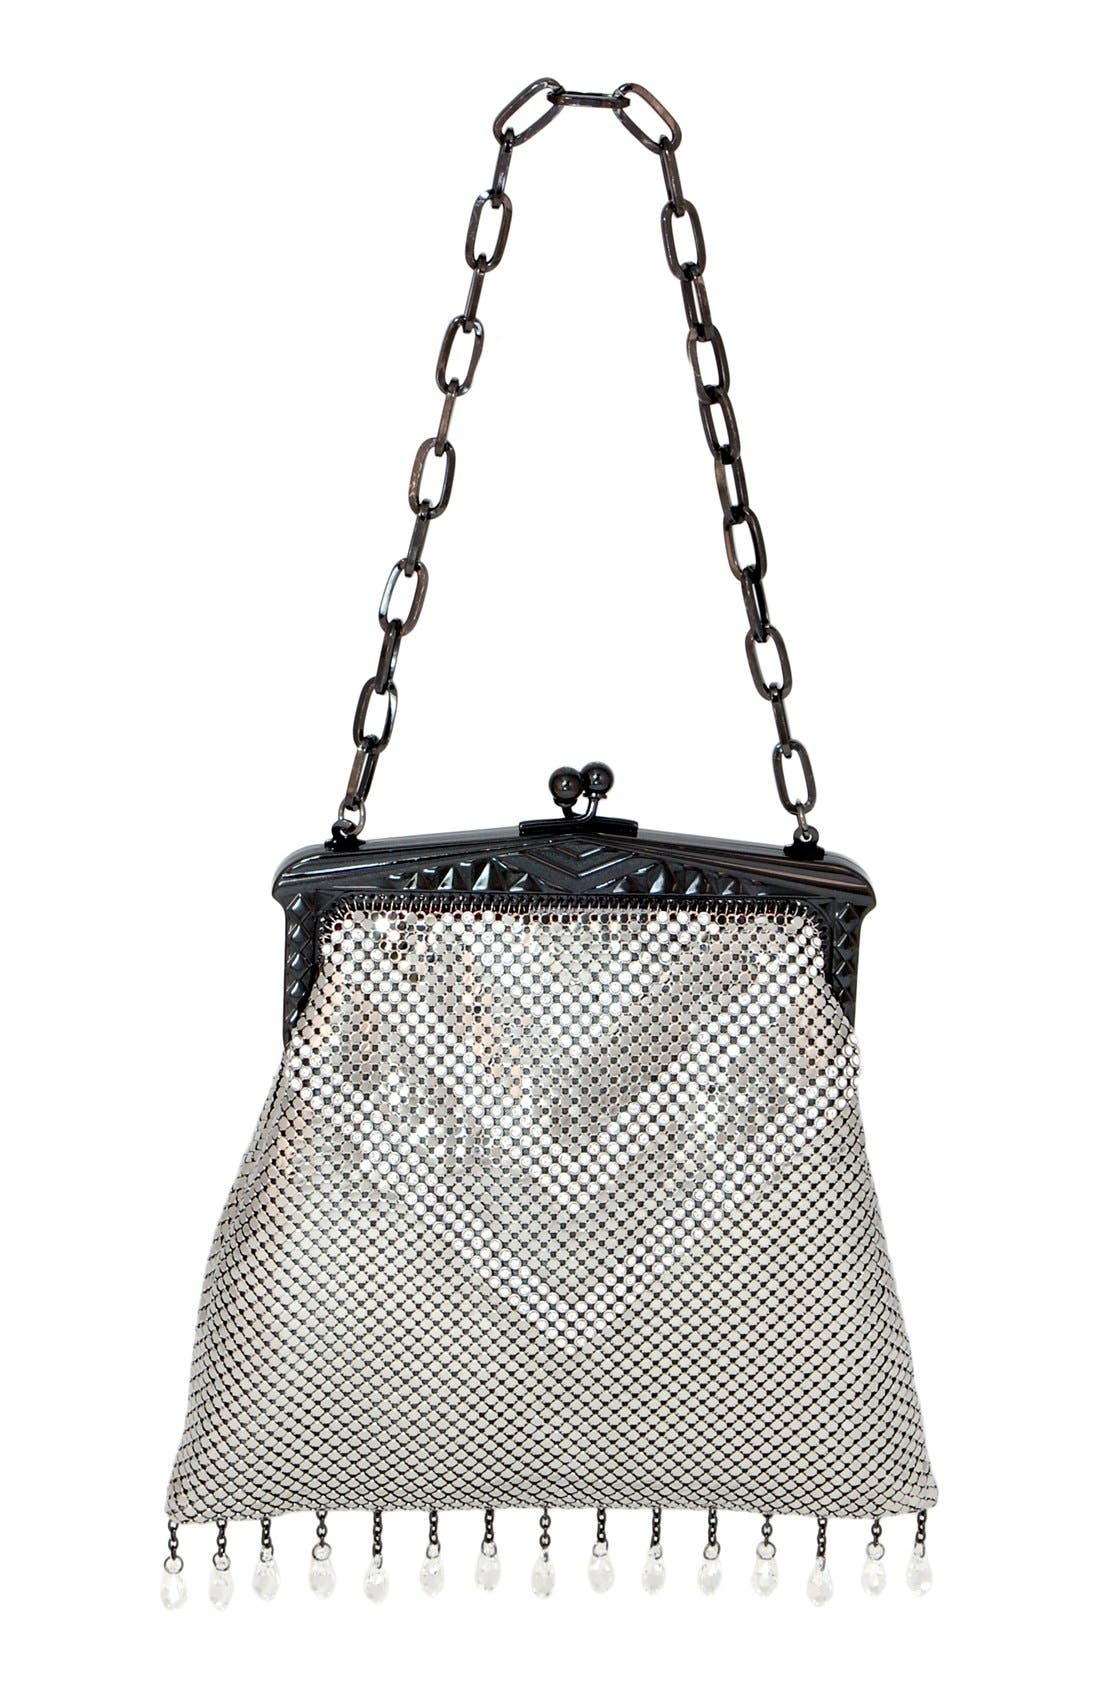 WHITING & DAVIS 'Heritage - Deco' Mesh Clutch, Main, color, PEWTER